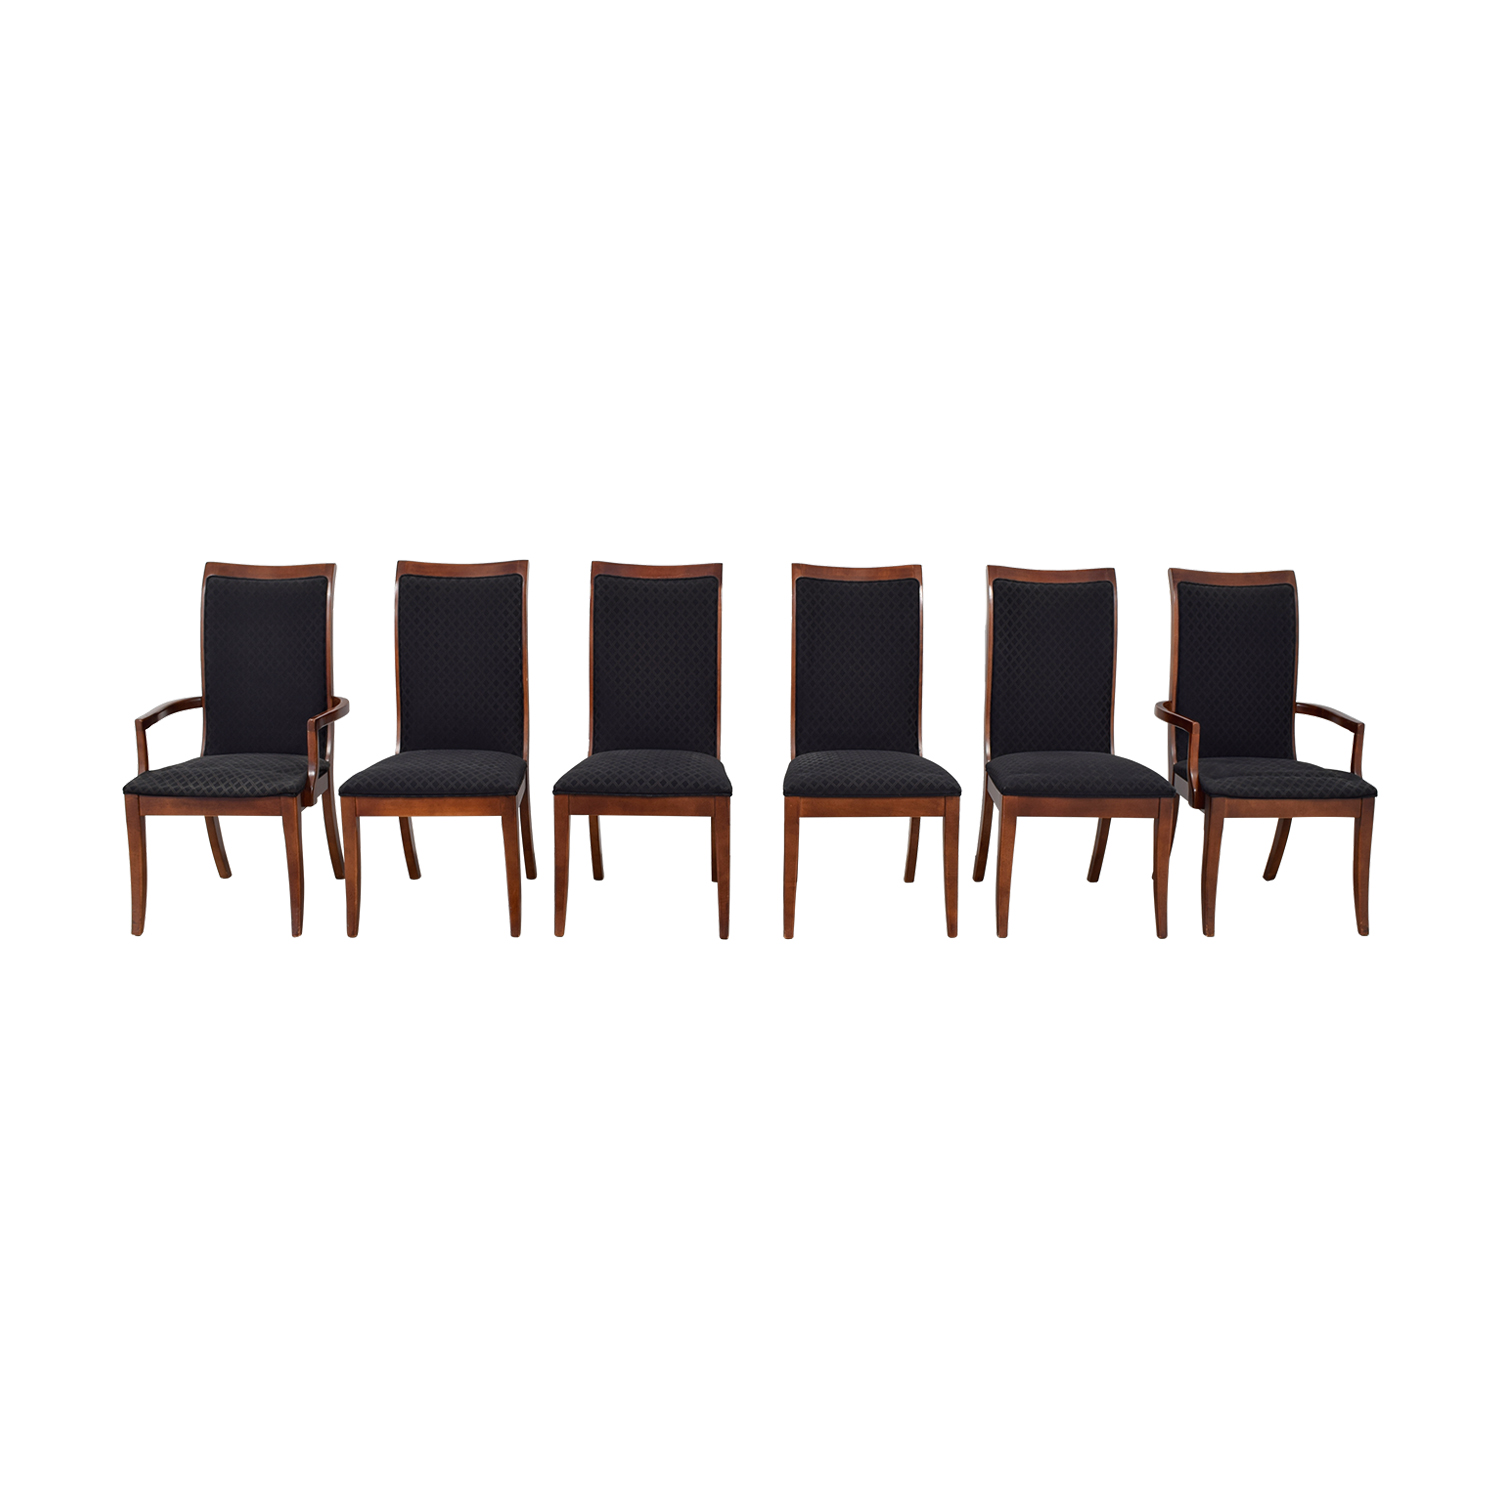 Shop Stanley Furniture Stanley Furniture Brown Upholstered Dining Chairs  Online ...